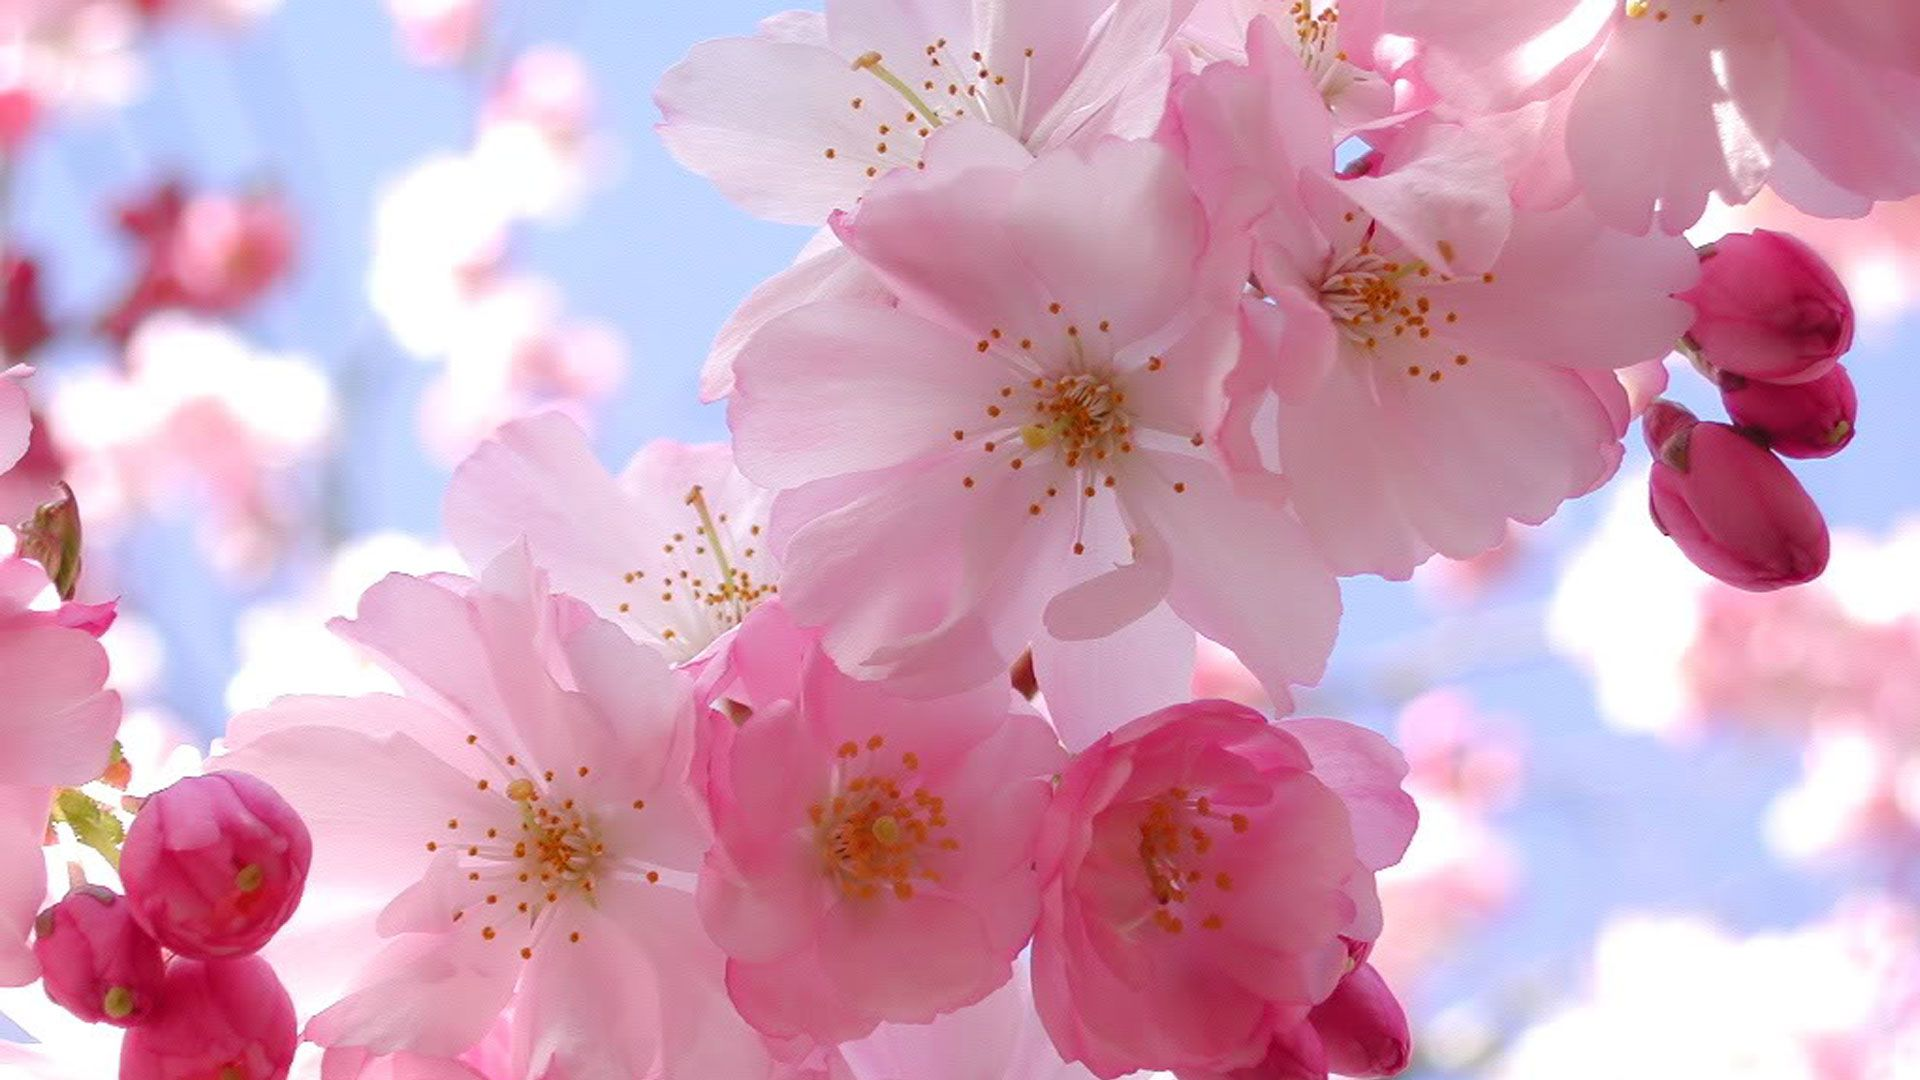 Expanse Of Cherry Blossoms In Japan Pink Blossom Flower Pictures Blossom Flower